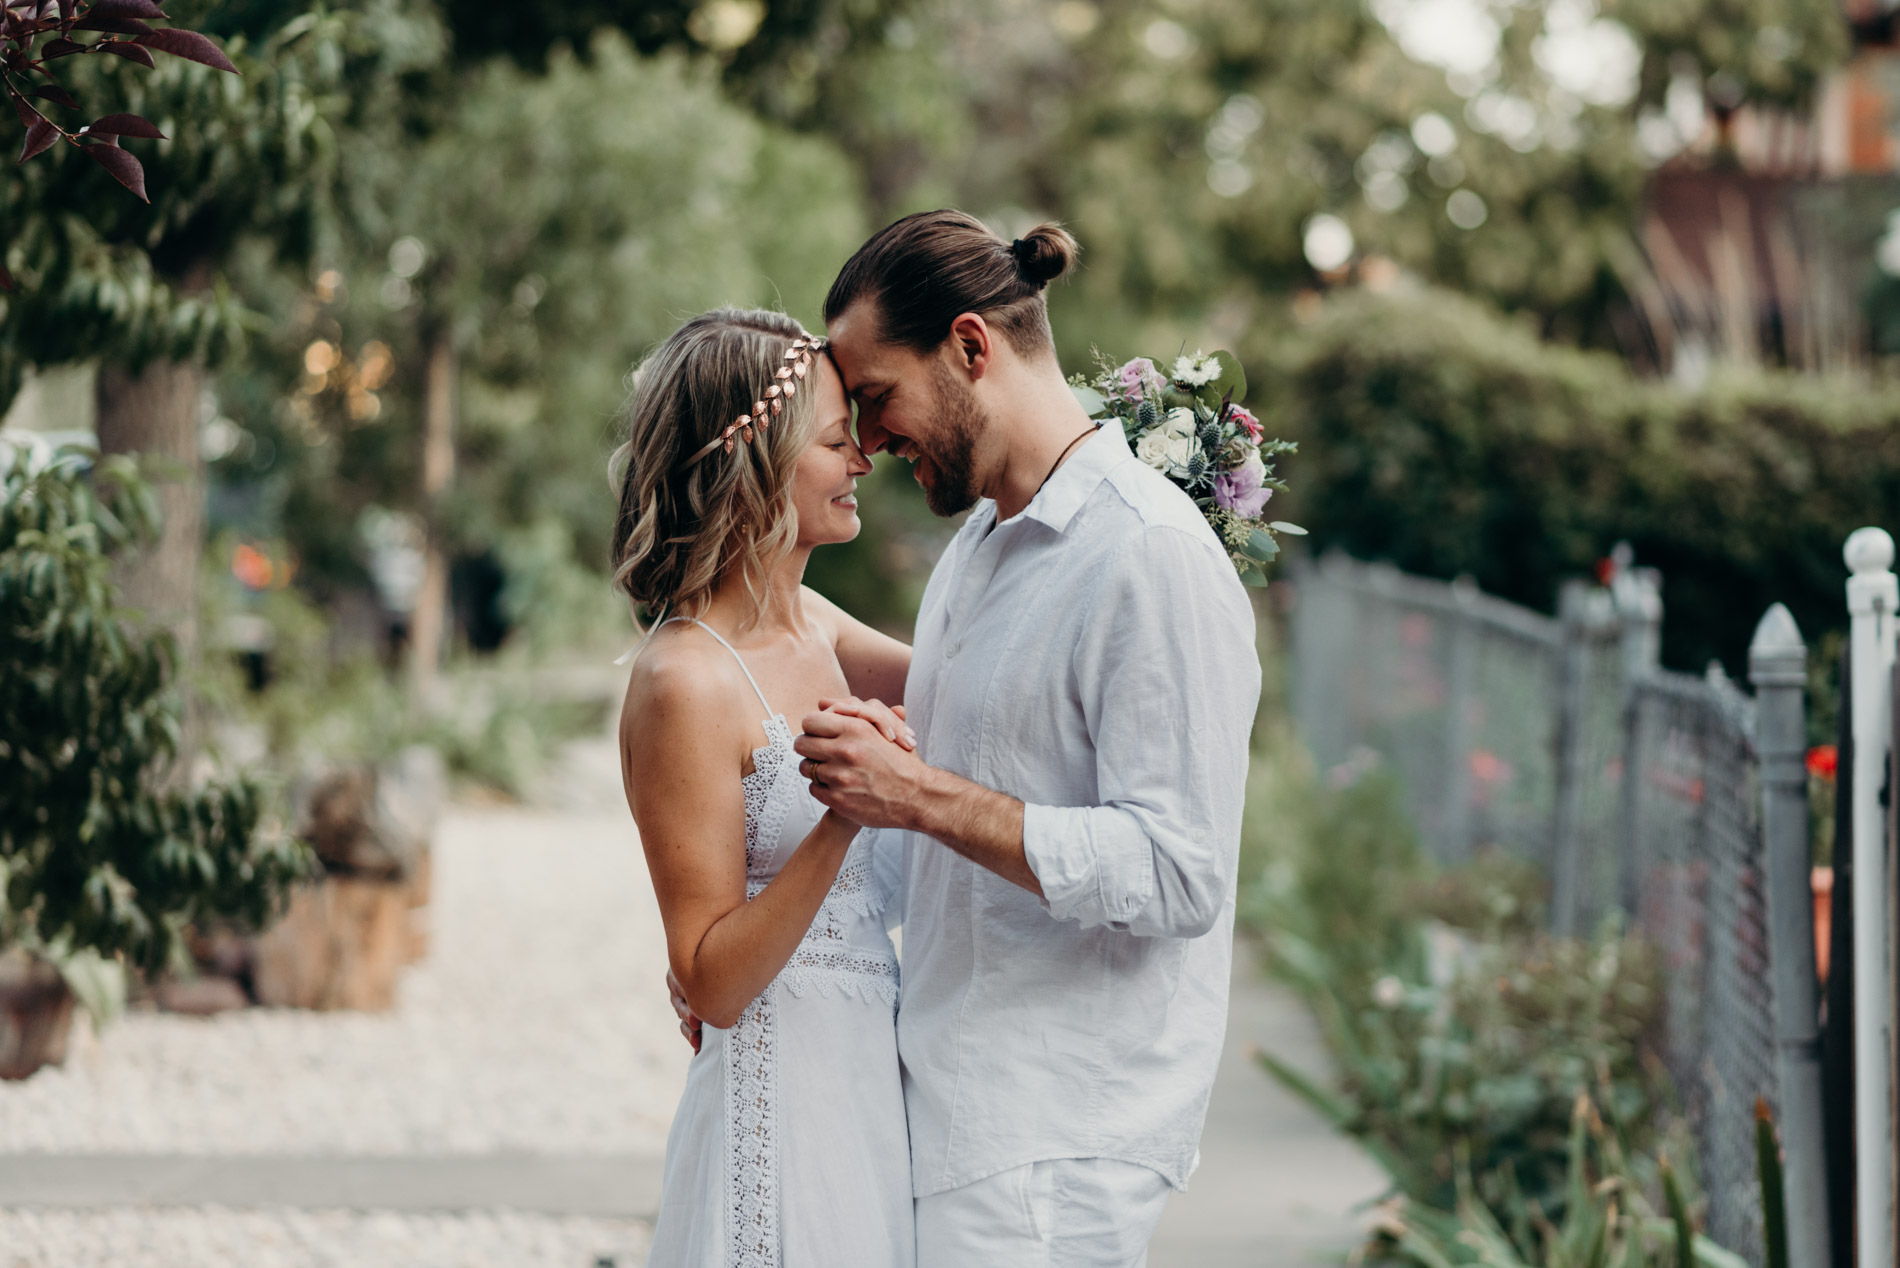 Intimate-wedding-photographer-Intimate-wedding-photography-elopement-photographer-traveling-wedding-photographer-traveling-elopement-photographer-Adventure-elopement-photographer-denver-wedding-in-home-wedding